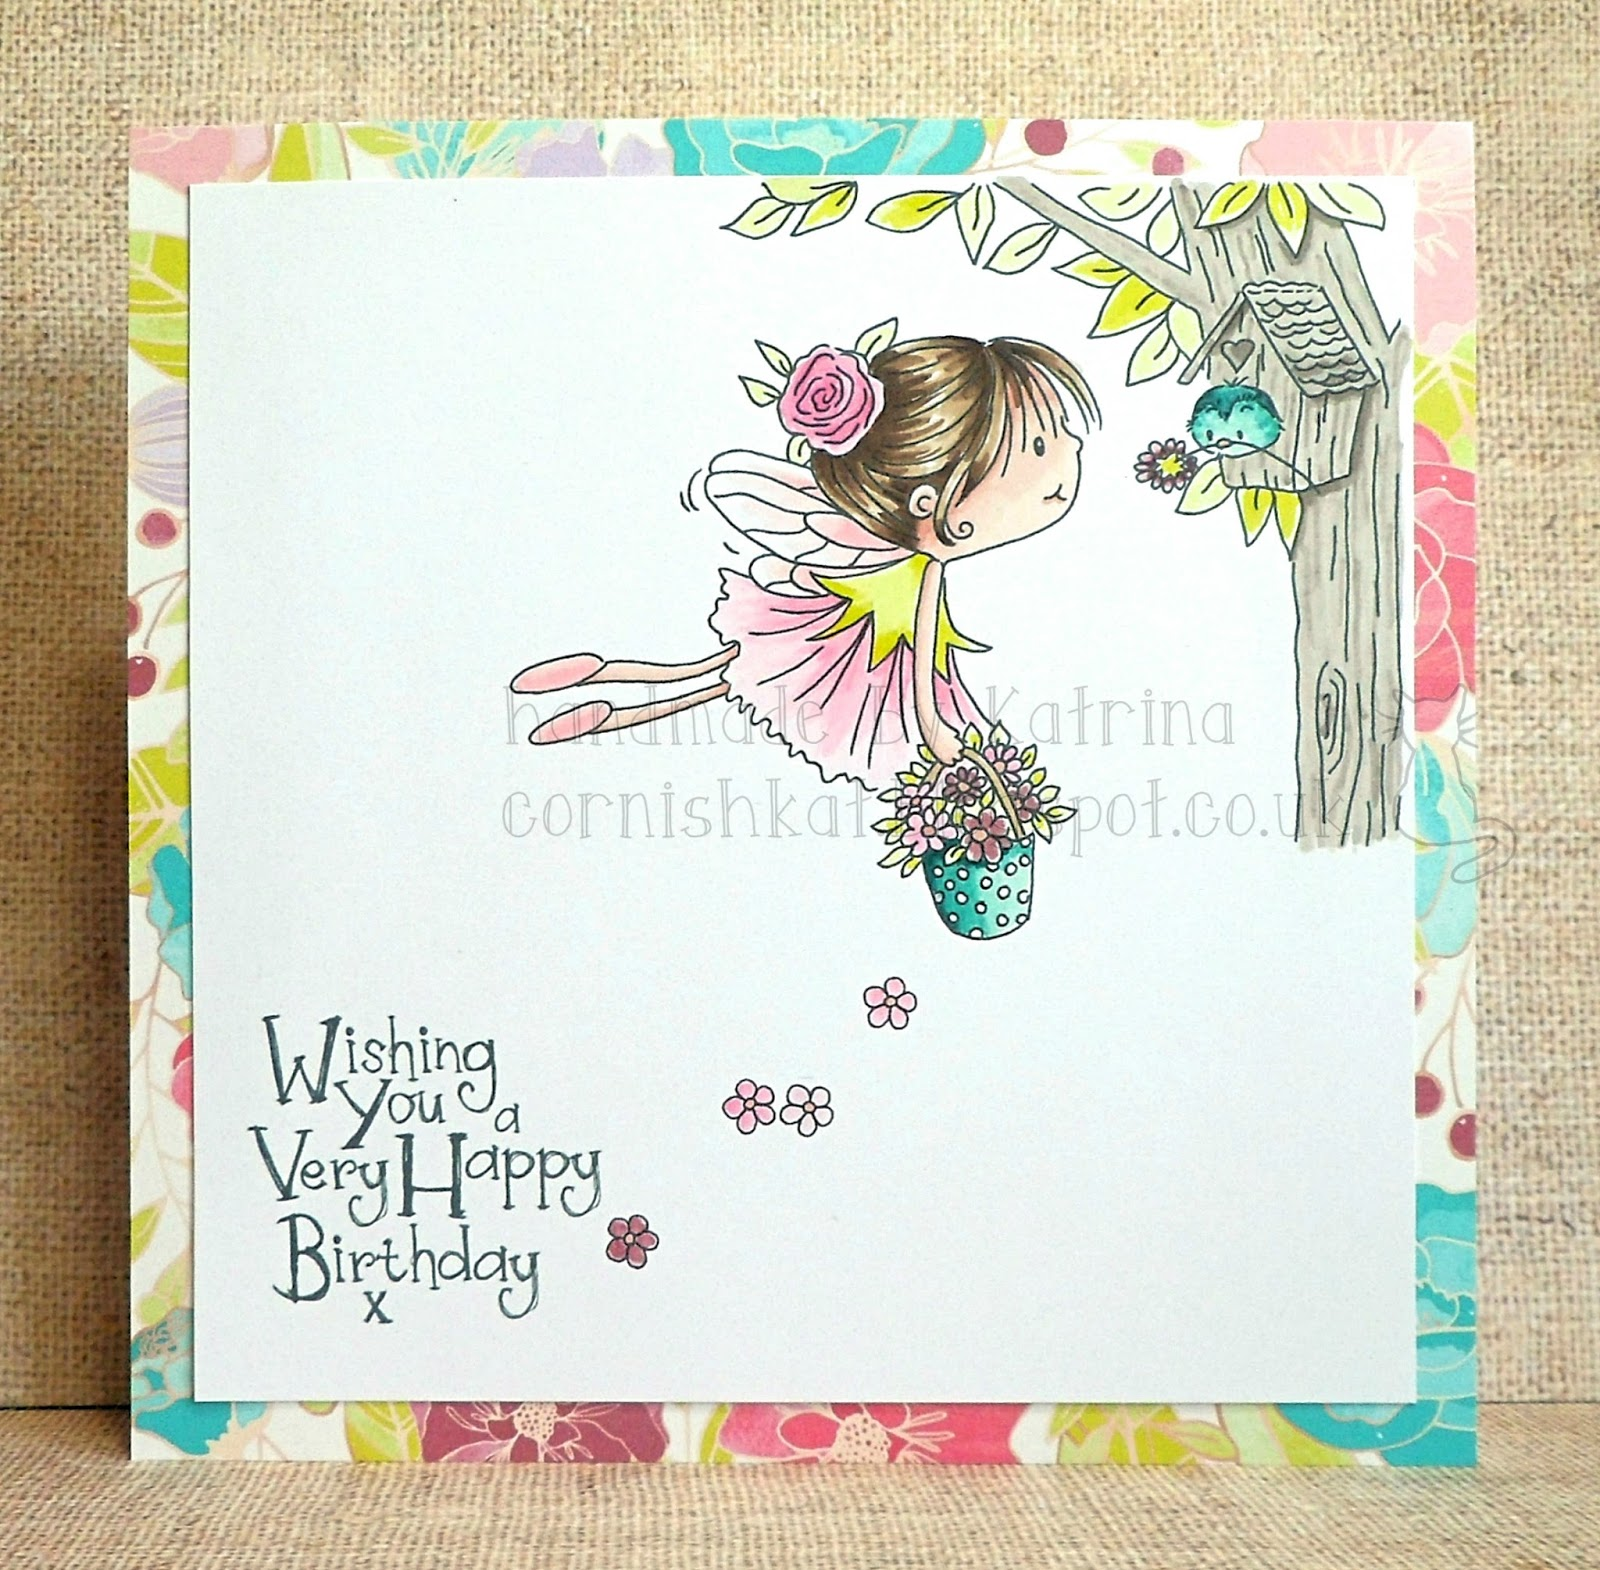 Katrinas crafting blog march 2018 there are 12 lovely new images coming out on monday at lili of the valley including four fairies this one is called birdhouse altavistaventures Image collections